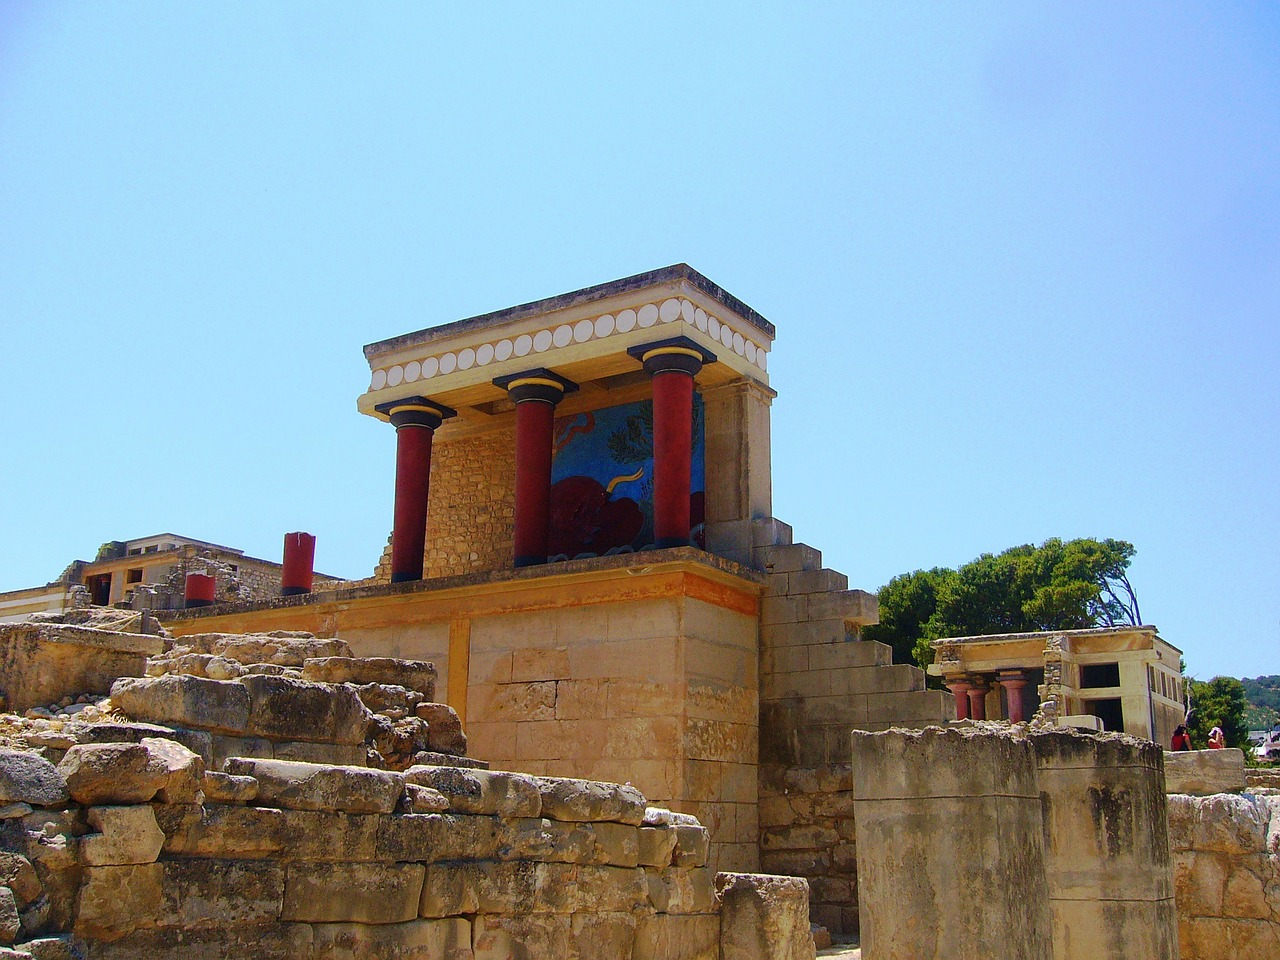 Knossos Palace in Crete. Greece, Crete: Attractions 84